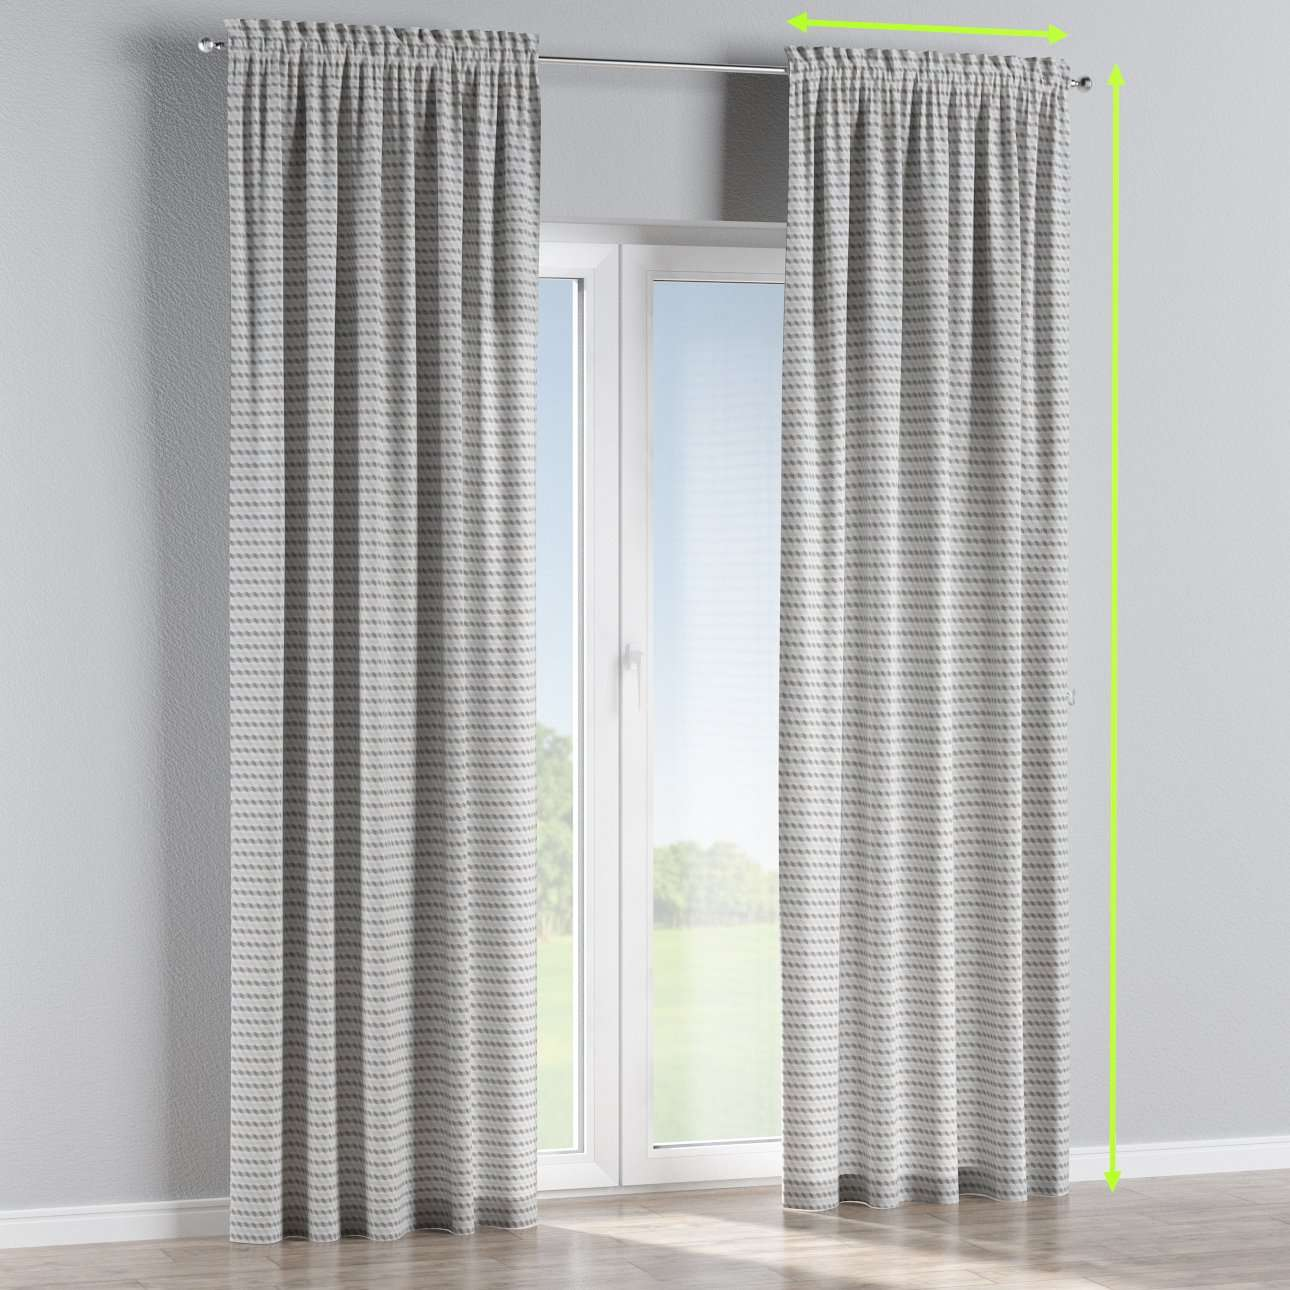 Slot and frill curtains in collection Rustica, fabric: 140-33